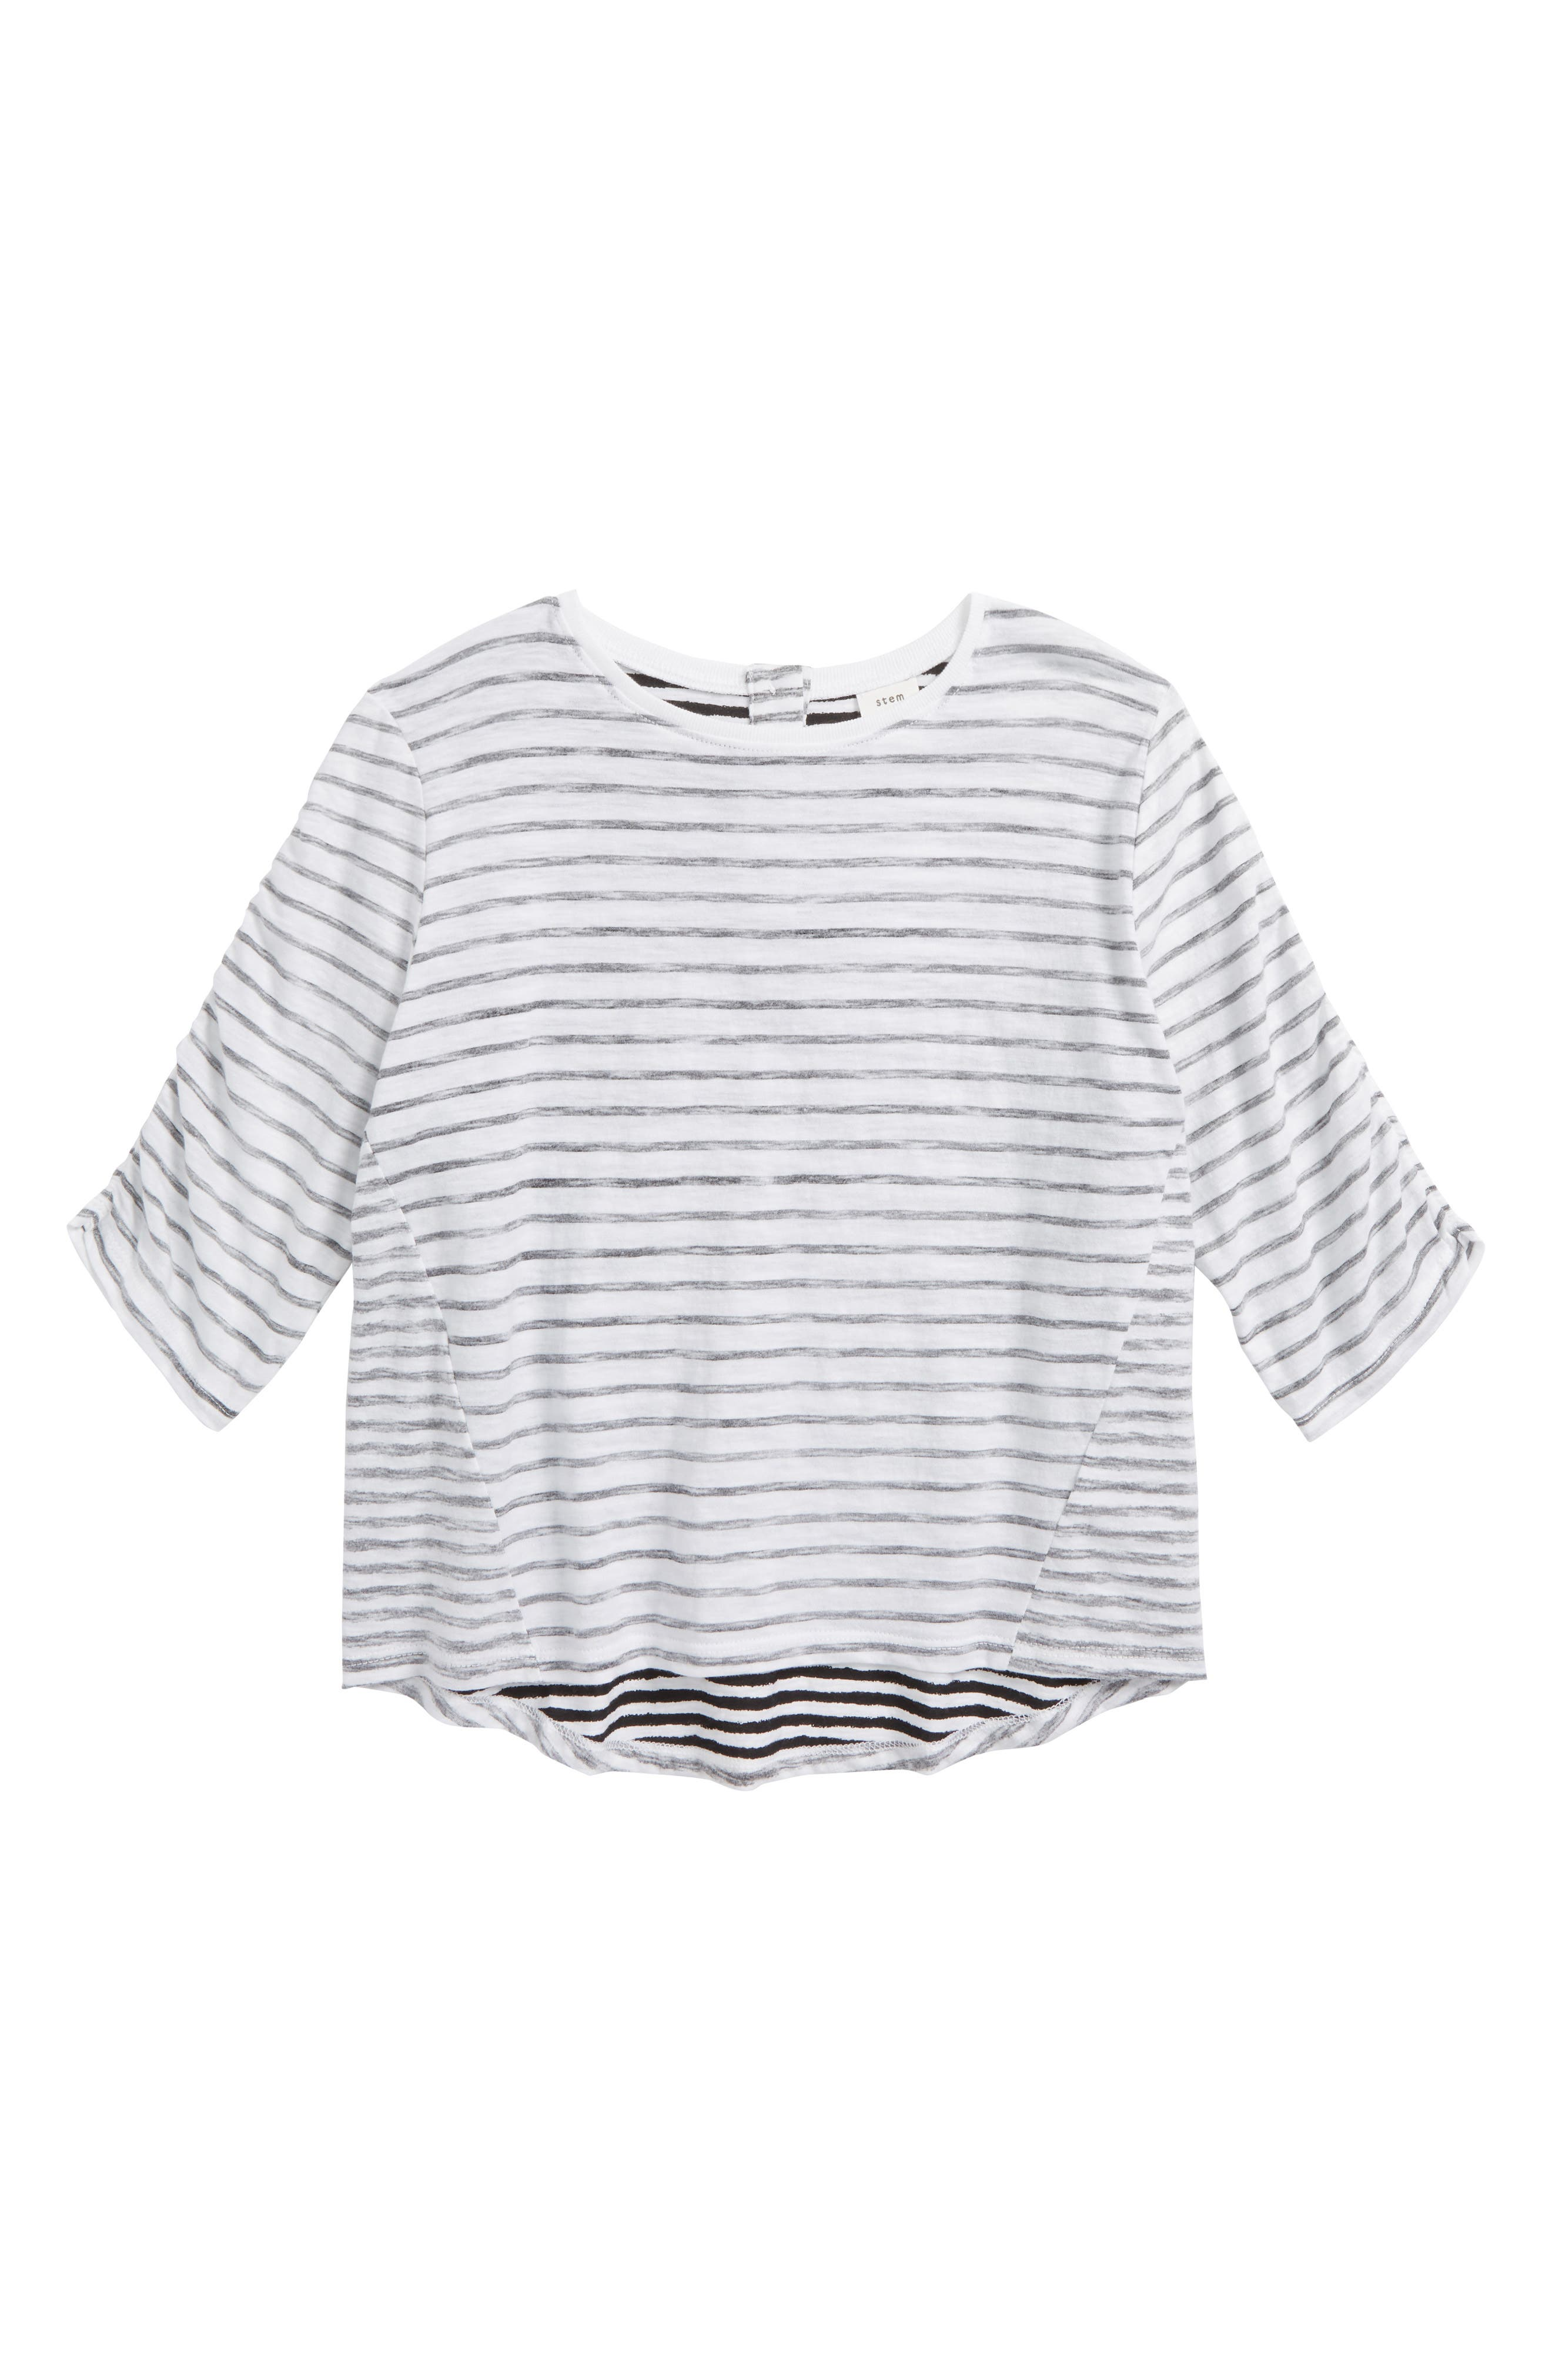 Ruched Sleeve Tee,                             Main thumbnail 1, color,                             White- Black Stripe